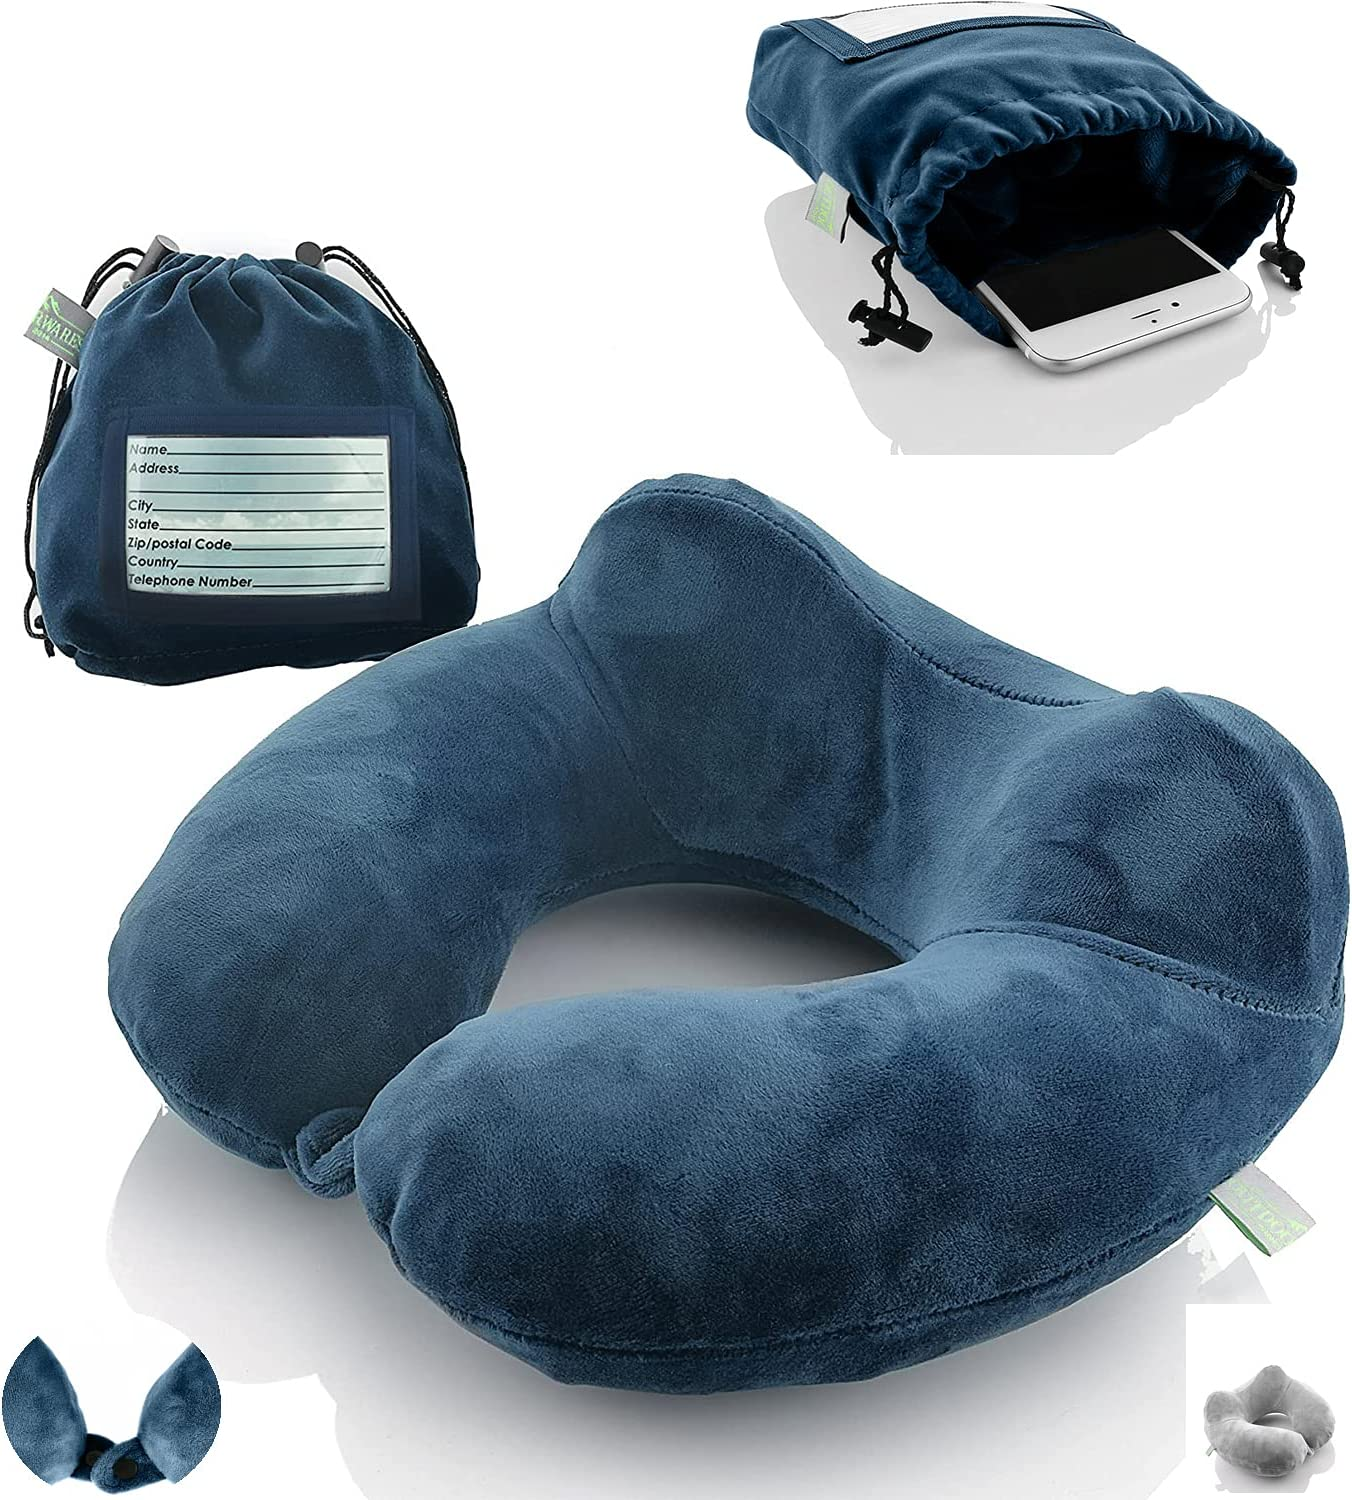 New products world's highest quality popular Inflatable Travel Neck Ranking TOP2 Pillow: Airplane For Extra-Soft Cushion.